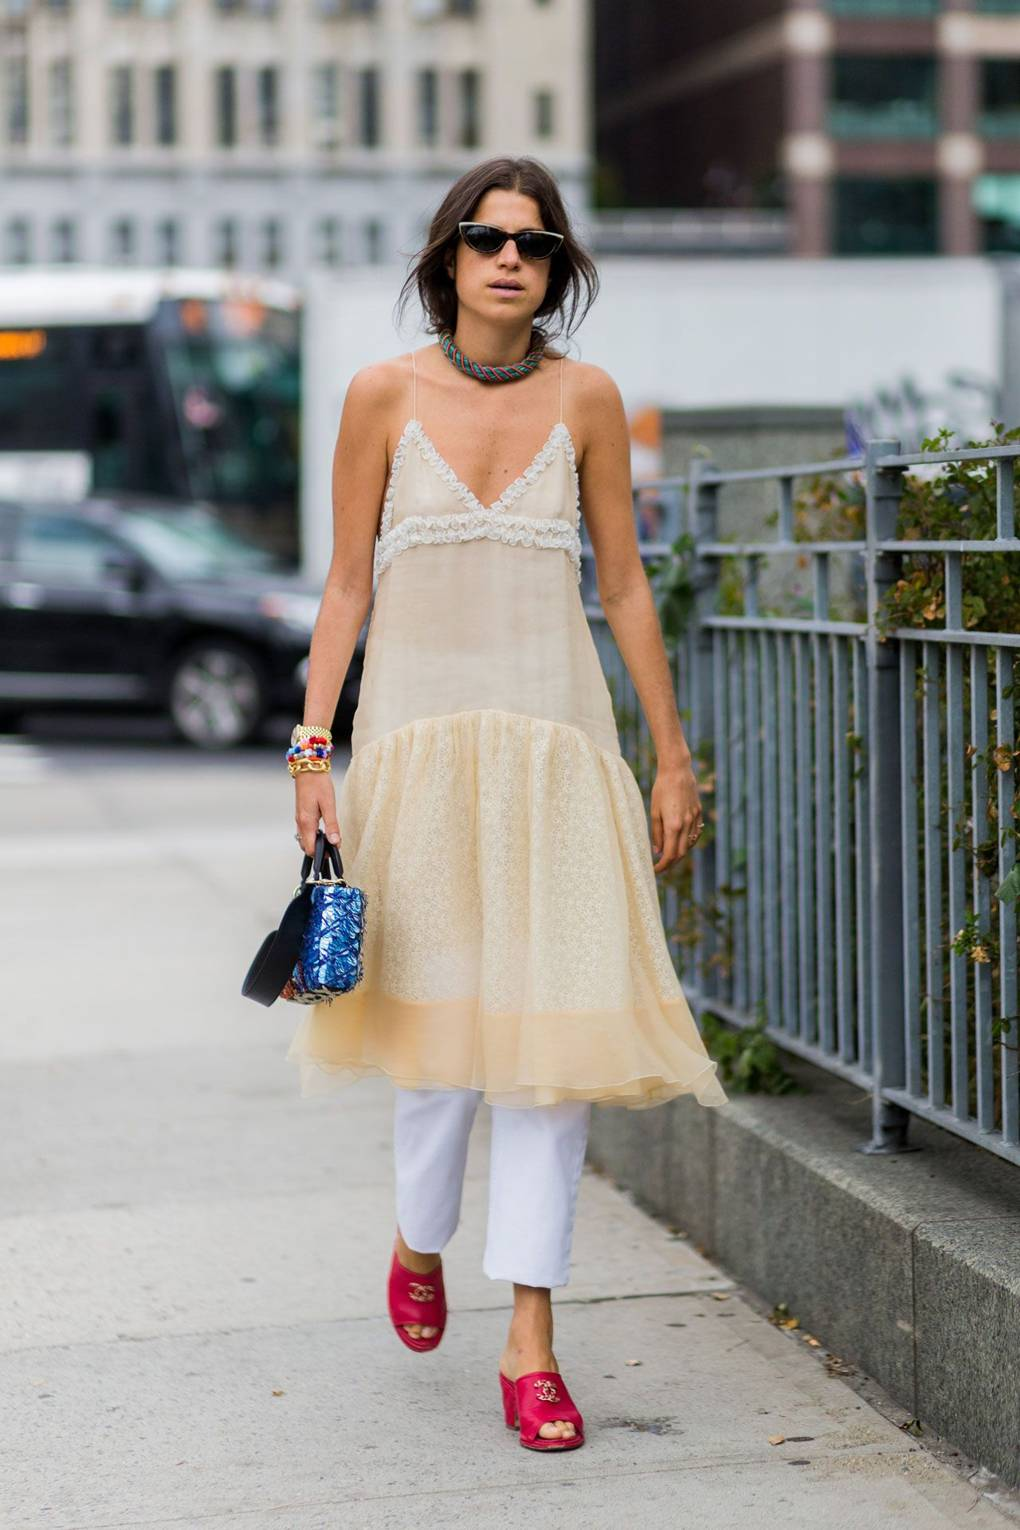 Photos Leandra Medine nude photos 2019